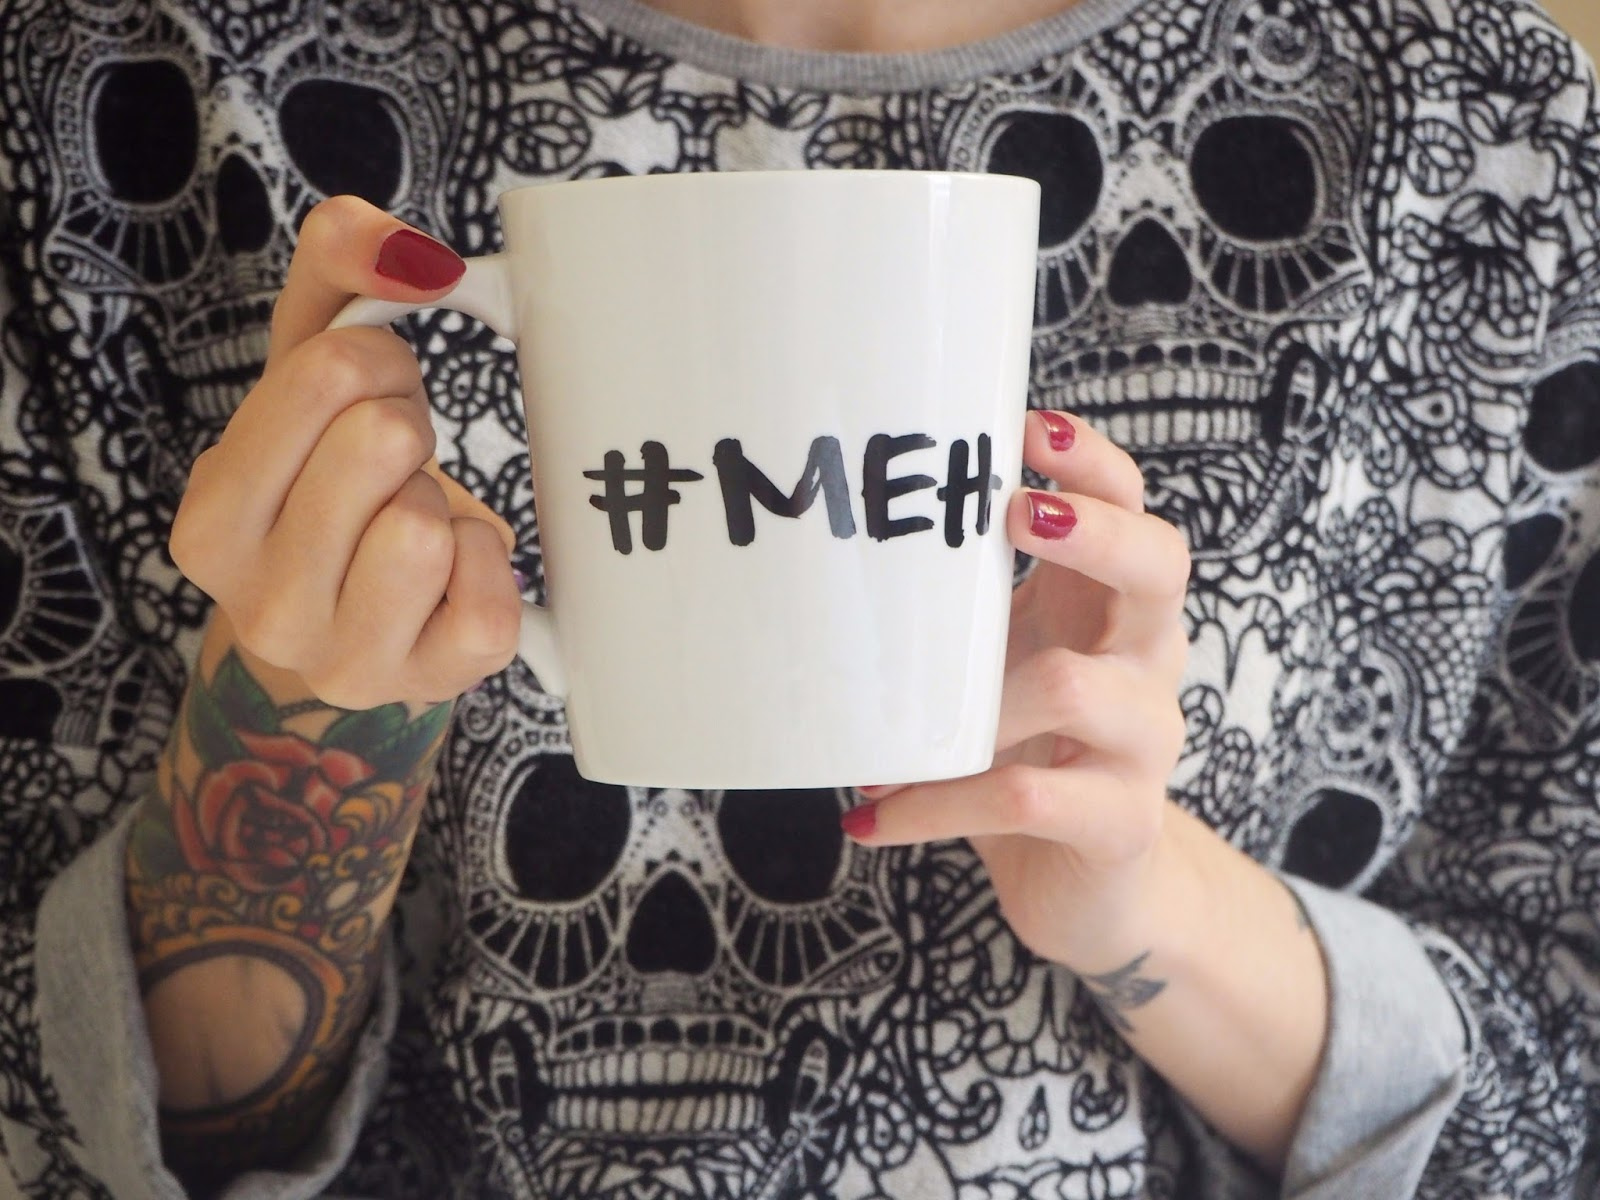 meh mug in focus